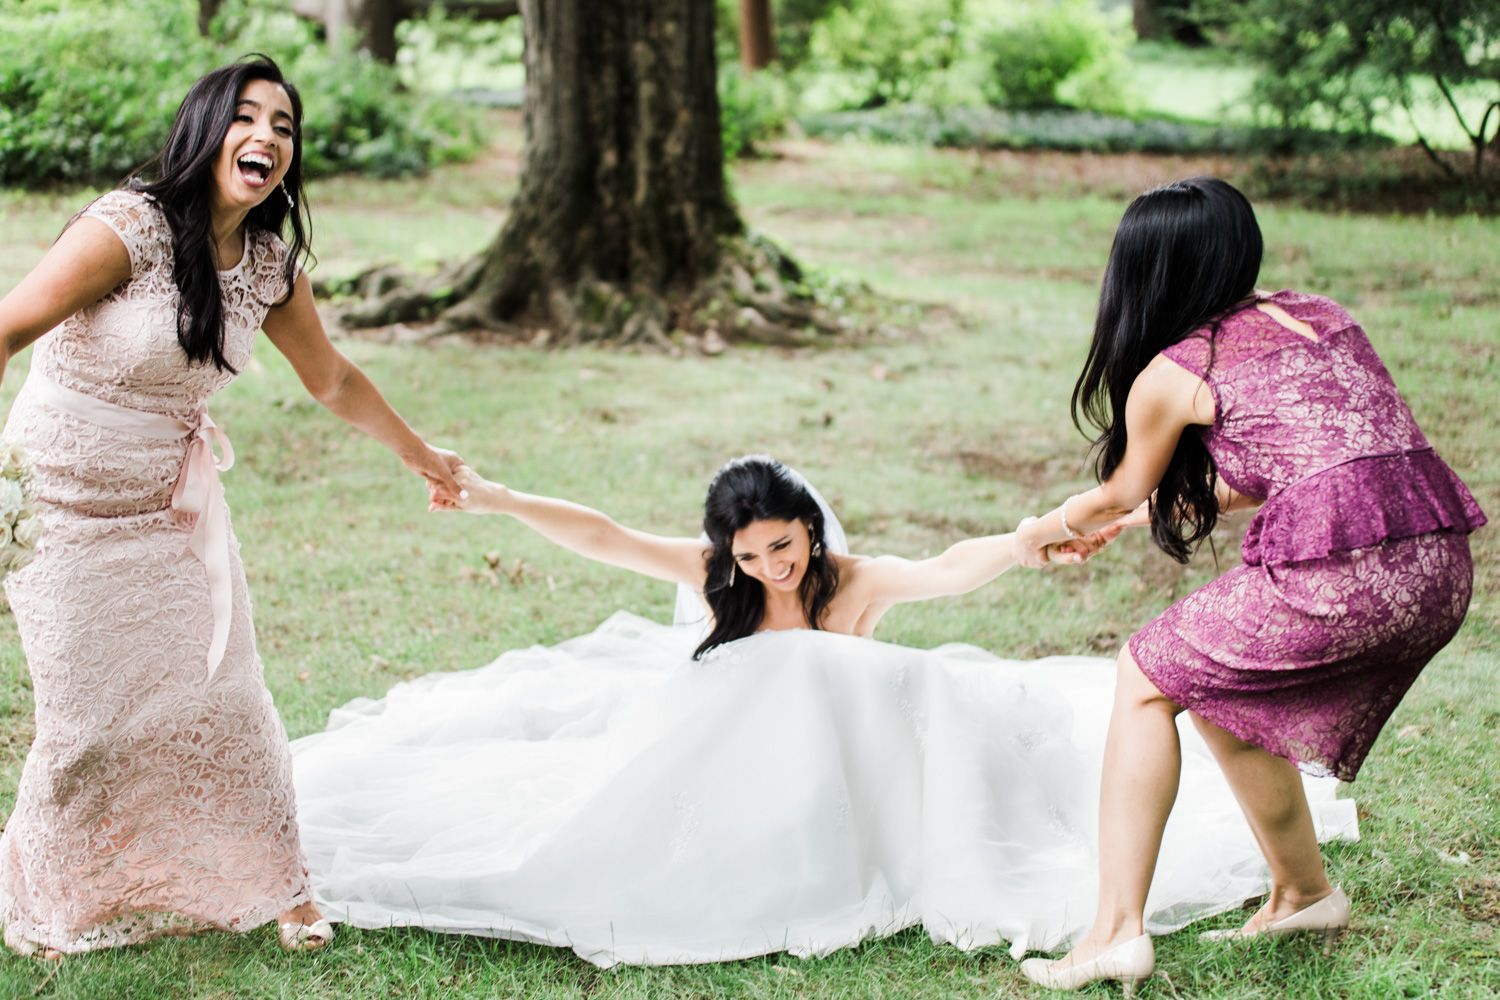 Bridesmaids help bride get up from the ground in a candid photo